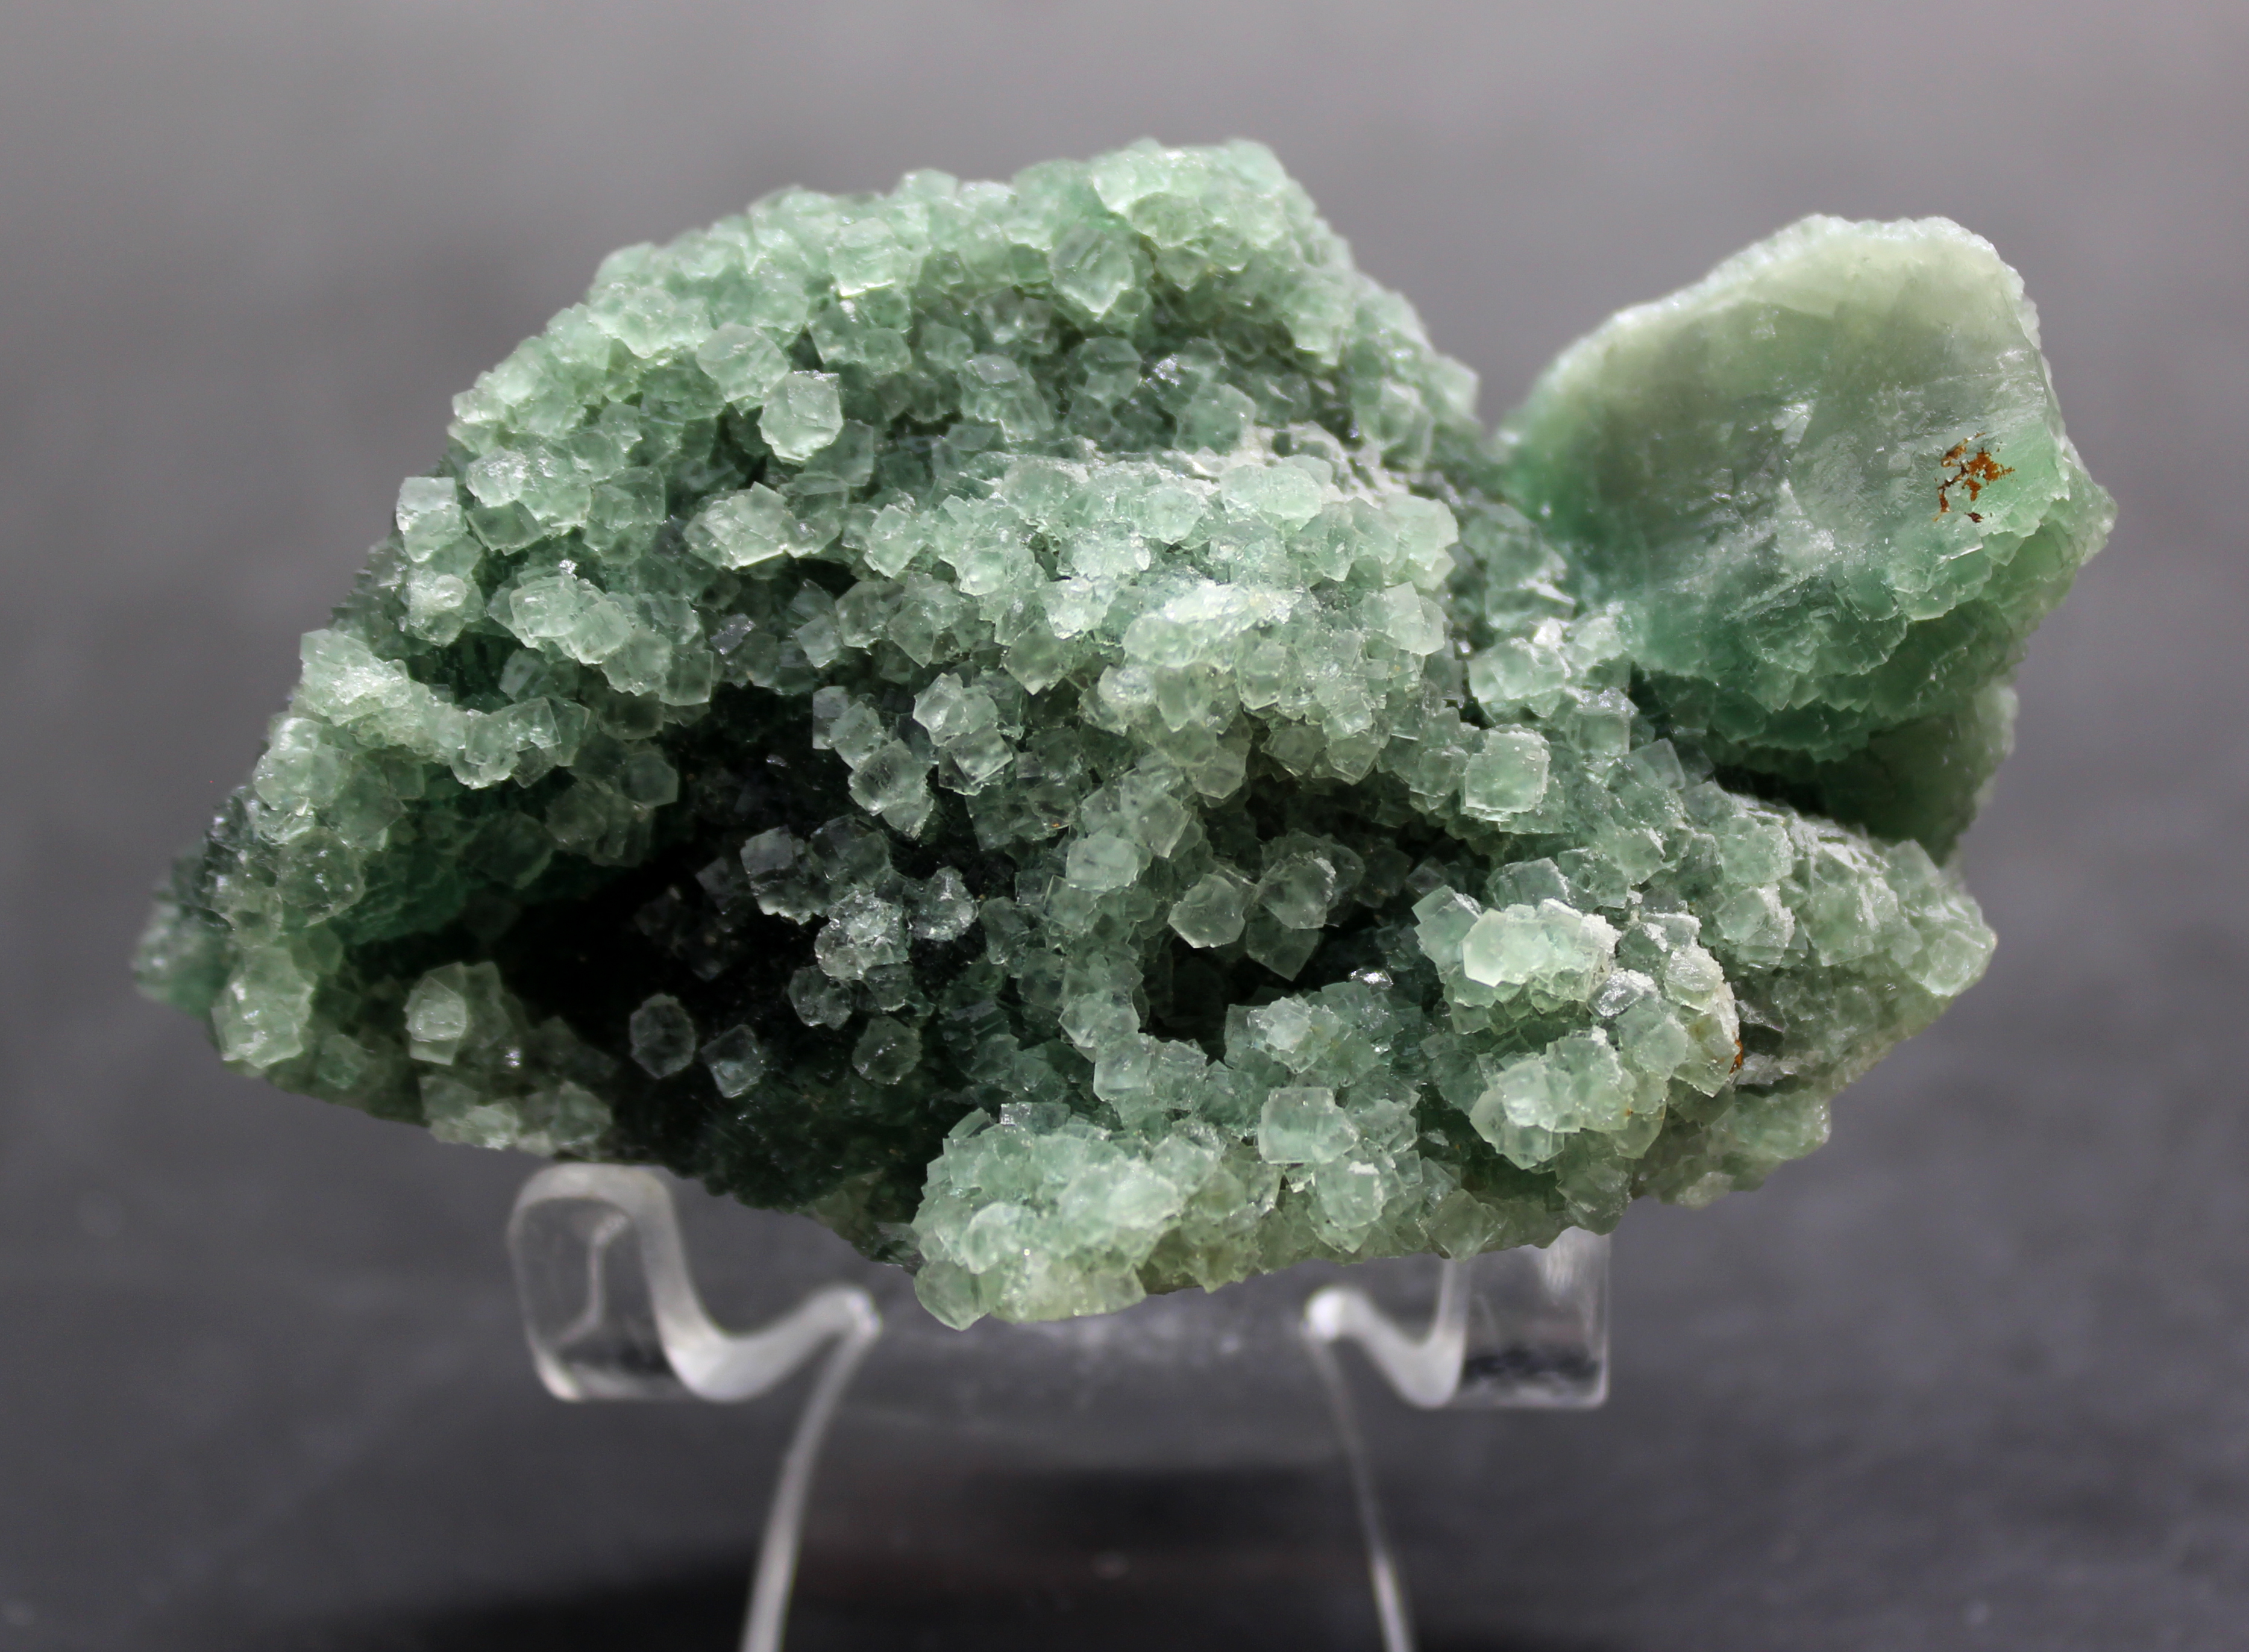 160g Natural Green Fluorite Mineral Crystal Specimens Stones And Crystals Healing Crystal From China Stones Aliexpress